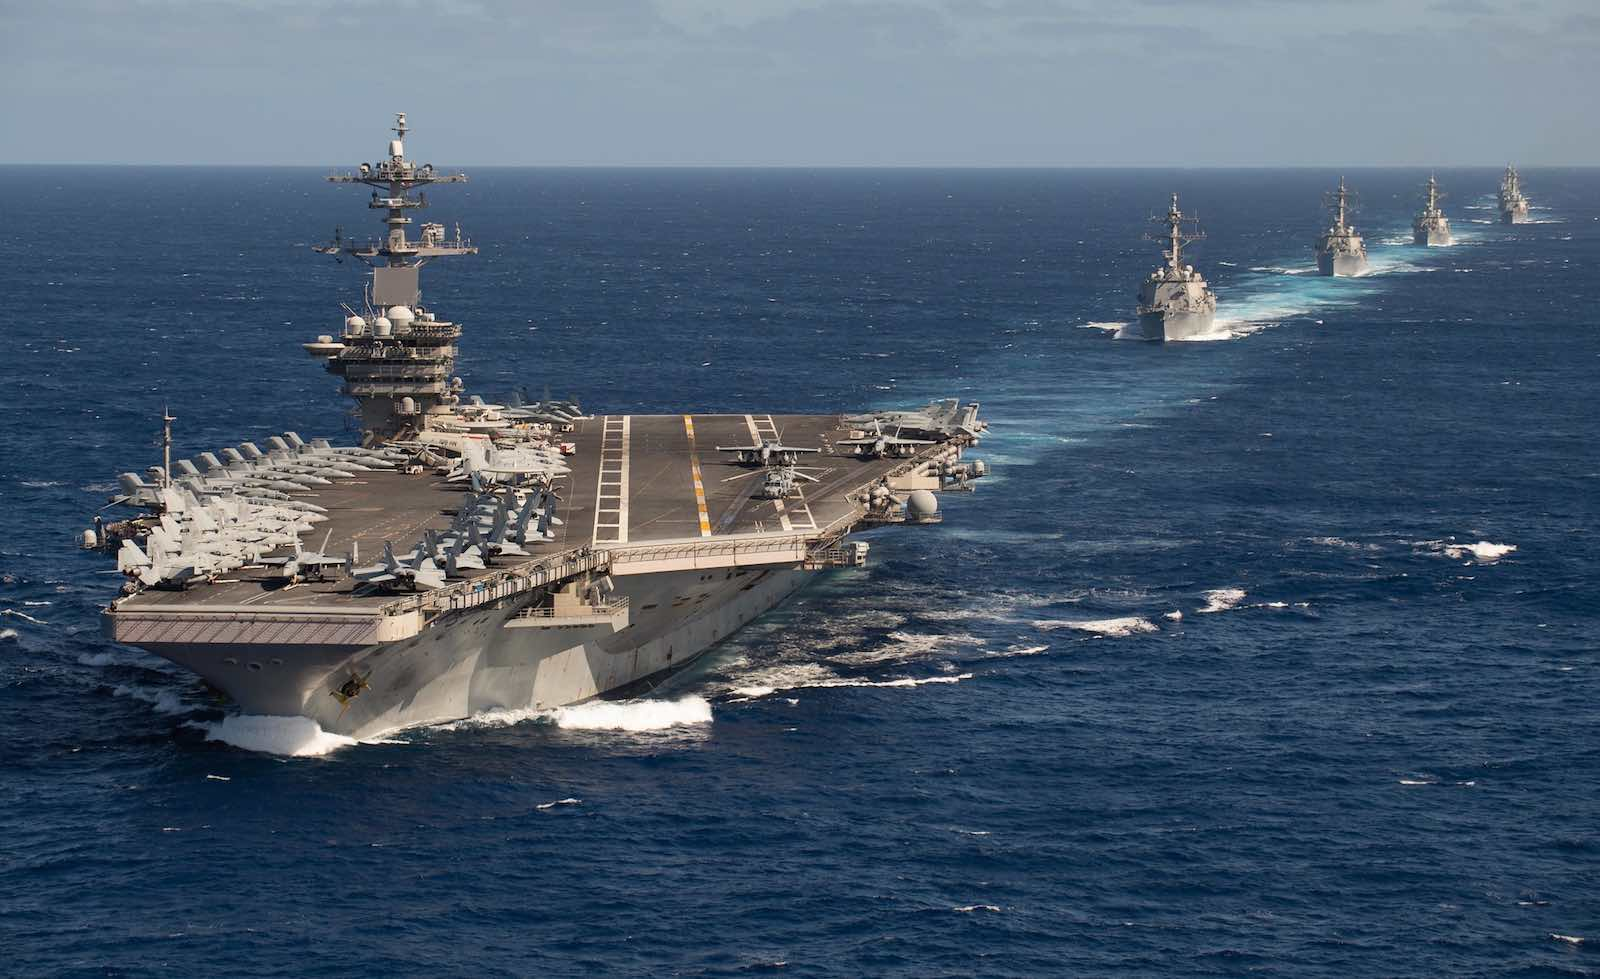 The US Theodore Roosevelt Carrier Strike Group in formation on transit last month to an Indo-Pacific deployment (Photo: US Navy/Flickr)